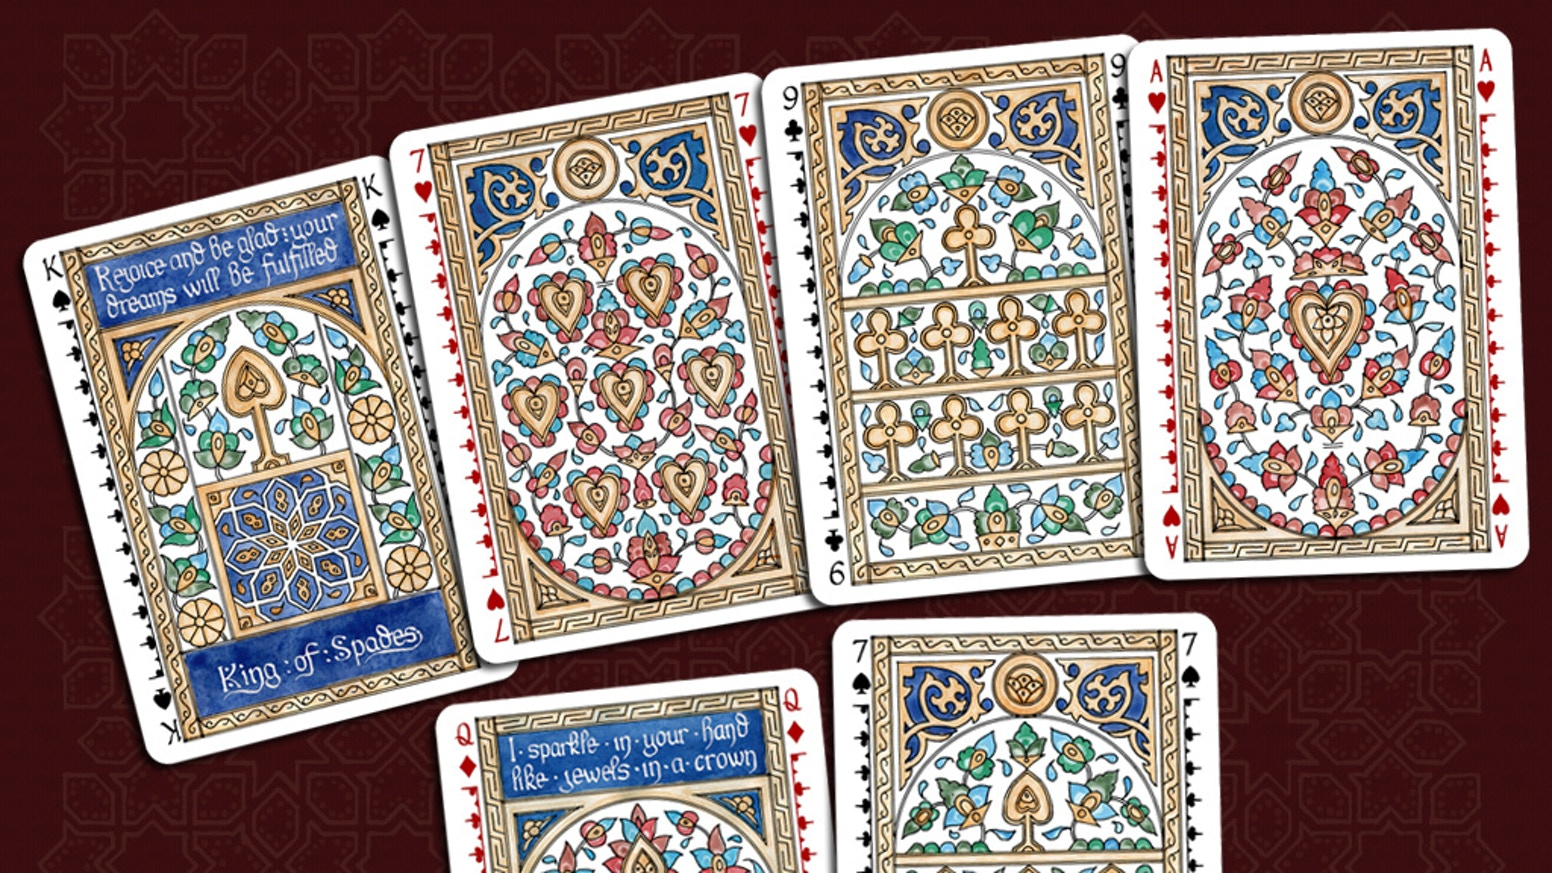 A deck of playing cards inspired by the ornately patterned medieval Mamluk cards, but based around the standard playing card suits.